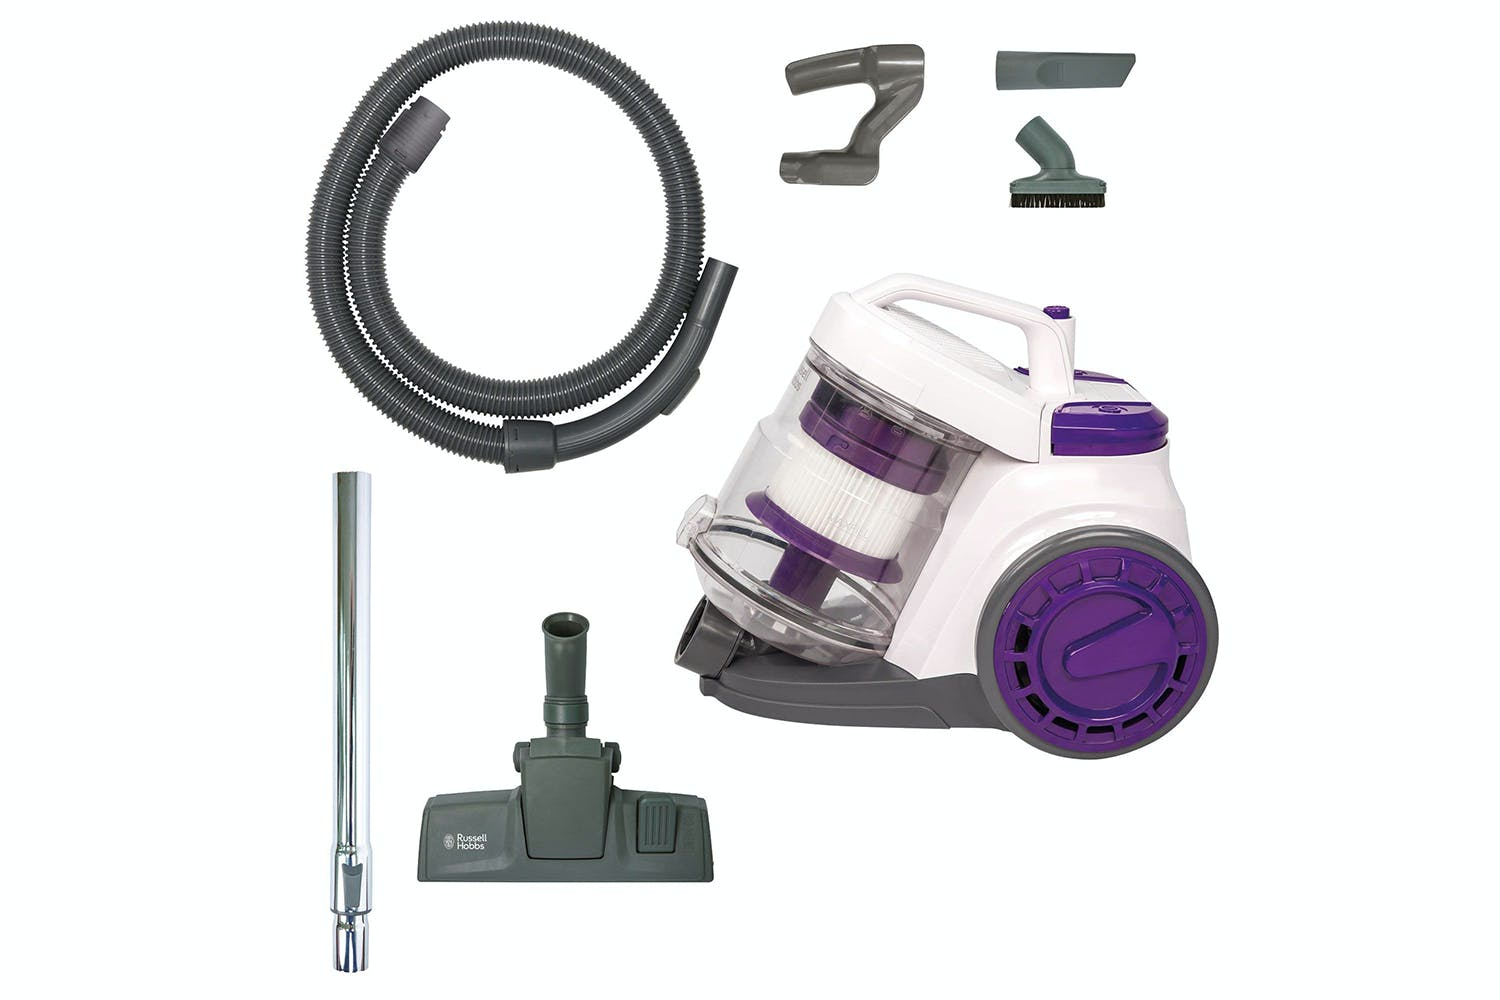 Russell Hobbs Bagless Cylinder Vacuum Cleaner Rhcv3001 Ireland Buy Neff Elements Oven Grill Online From Unifit